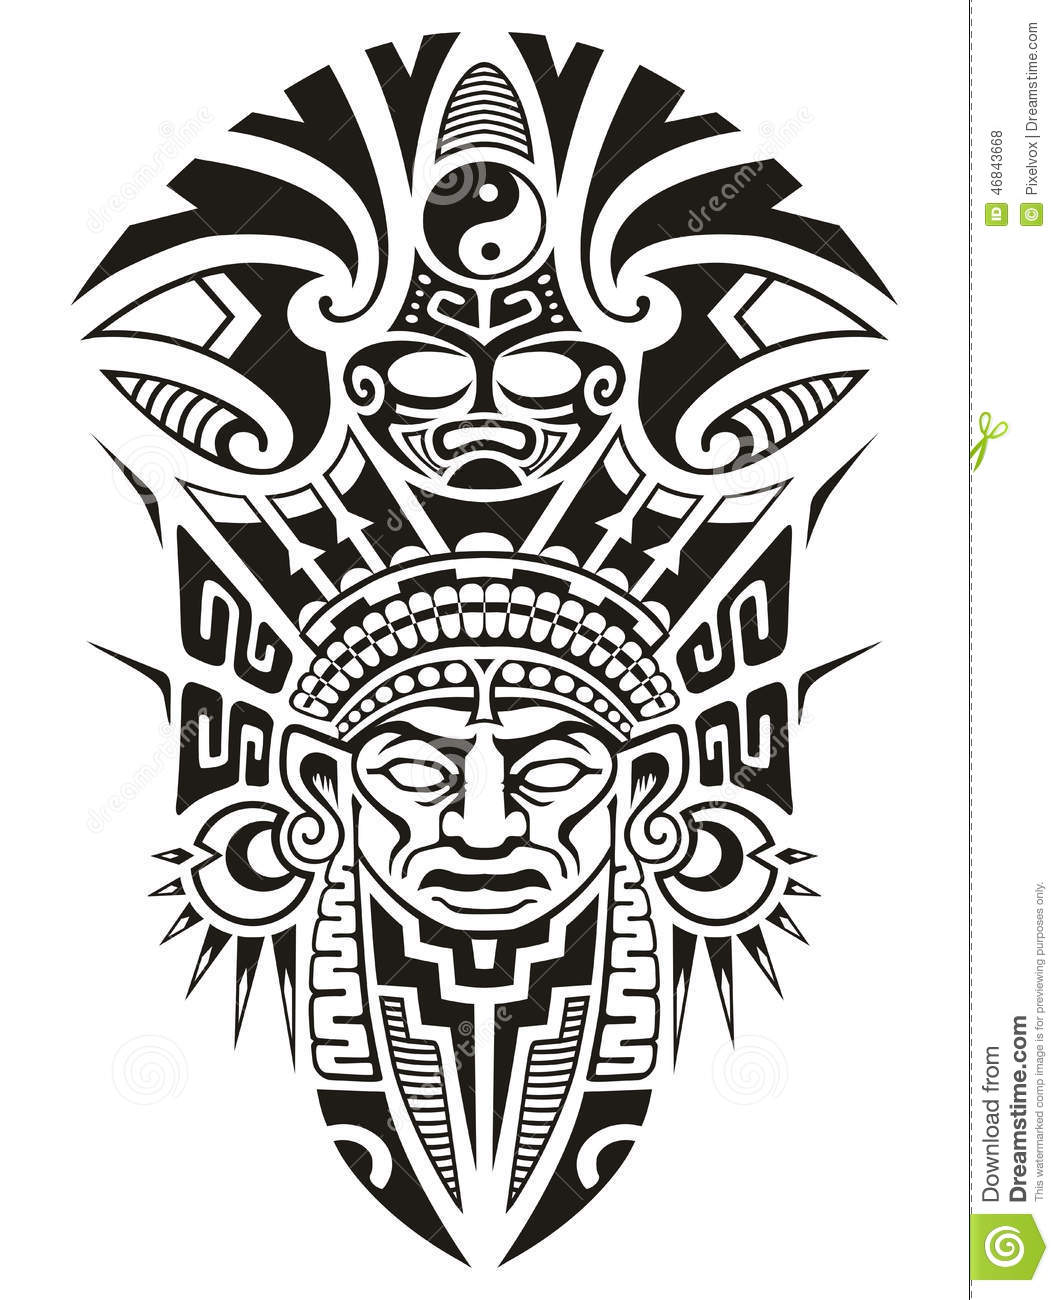 Ancient Tribal Mask Vector Illustration Stock Vector - Image: 46843668